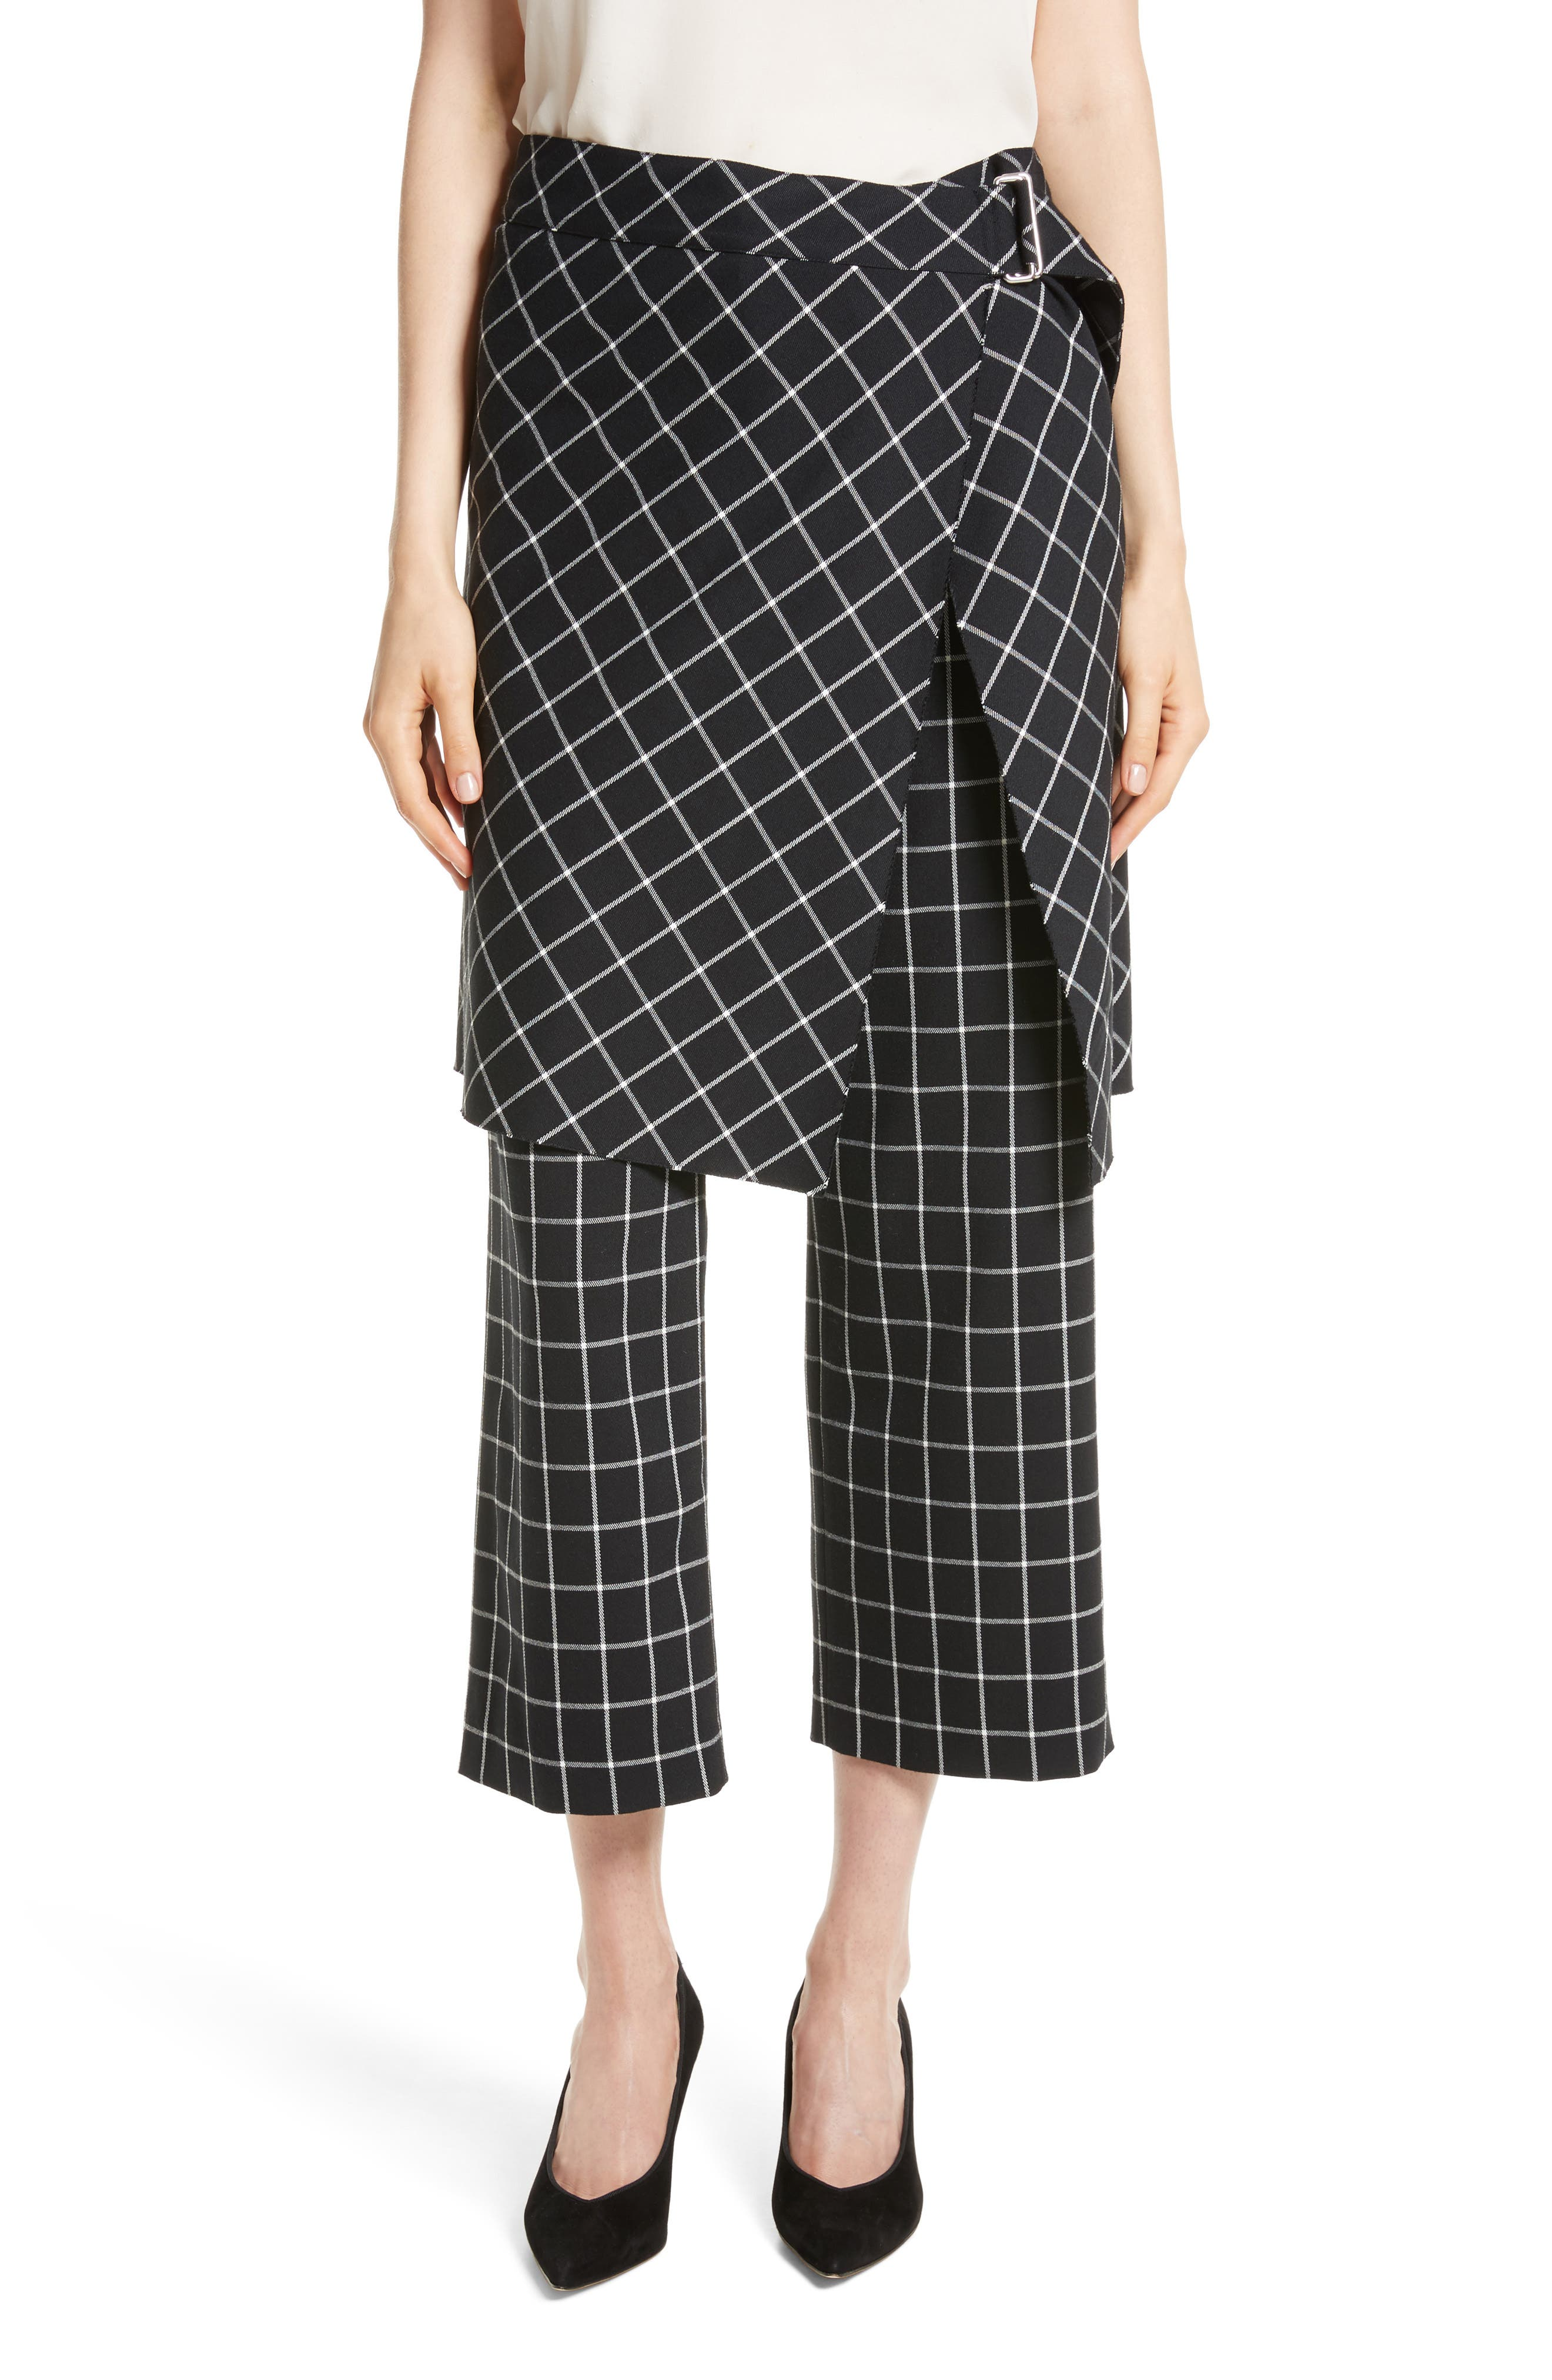 Alternate Image 1 Selected - Robert Rodriguez Grid Print Skirted Pants